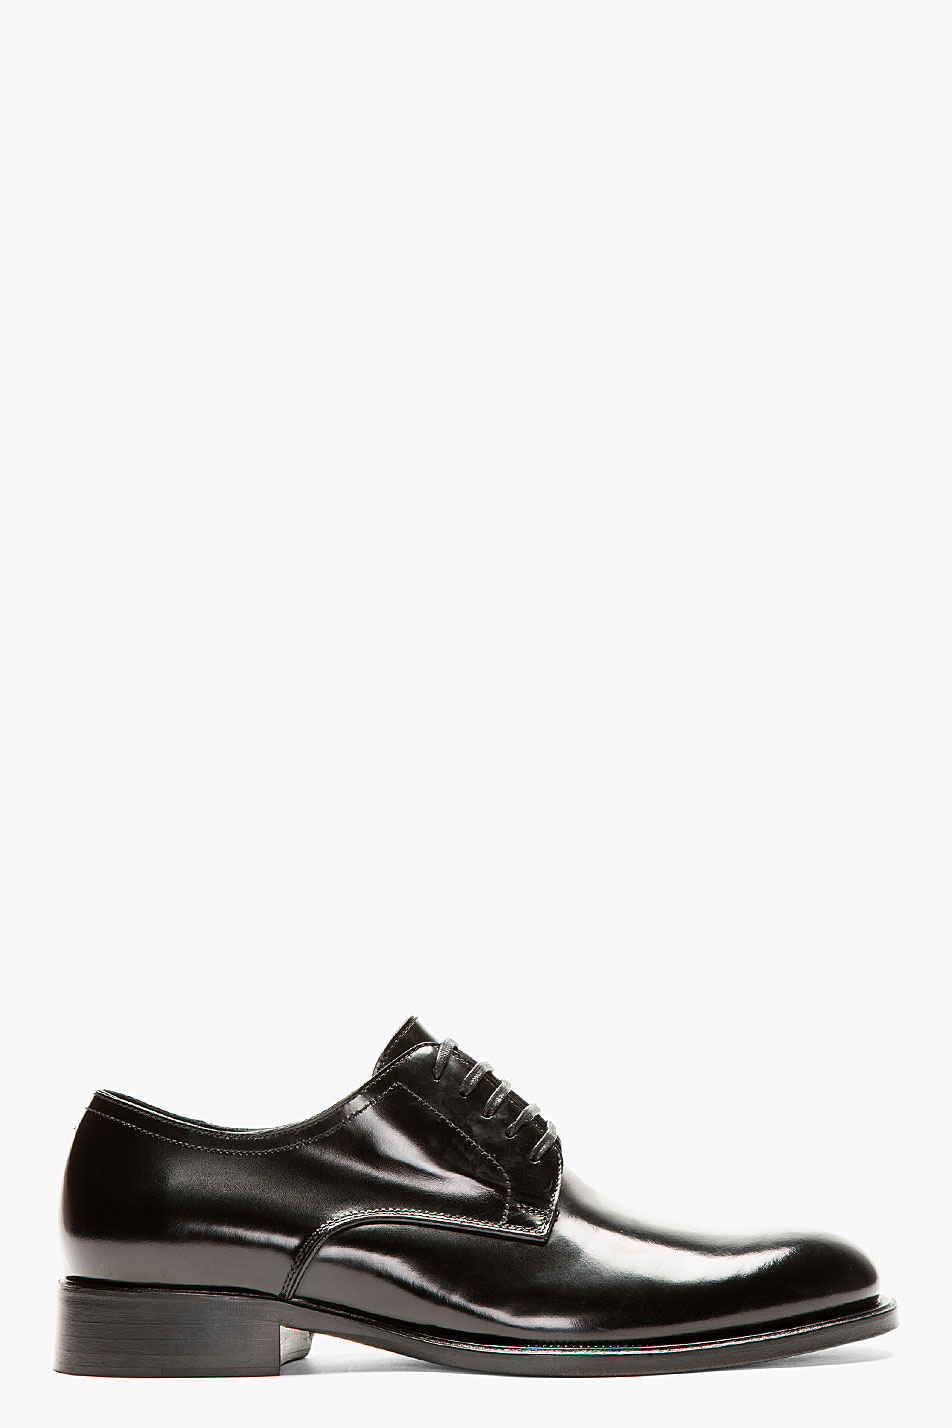 Dsquared2 black buffed leather classic derbys